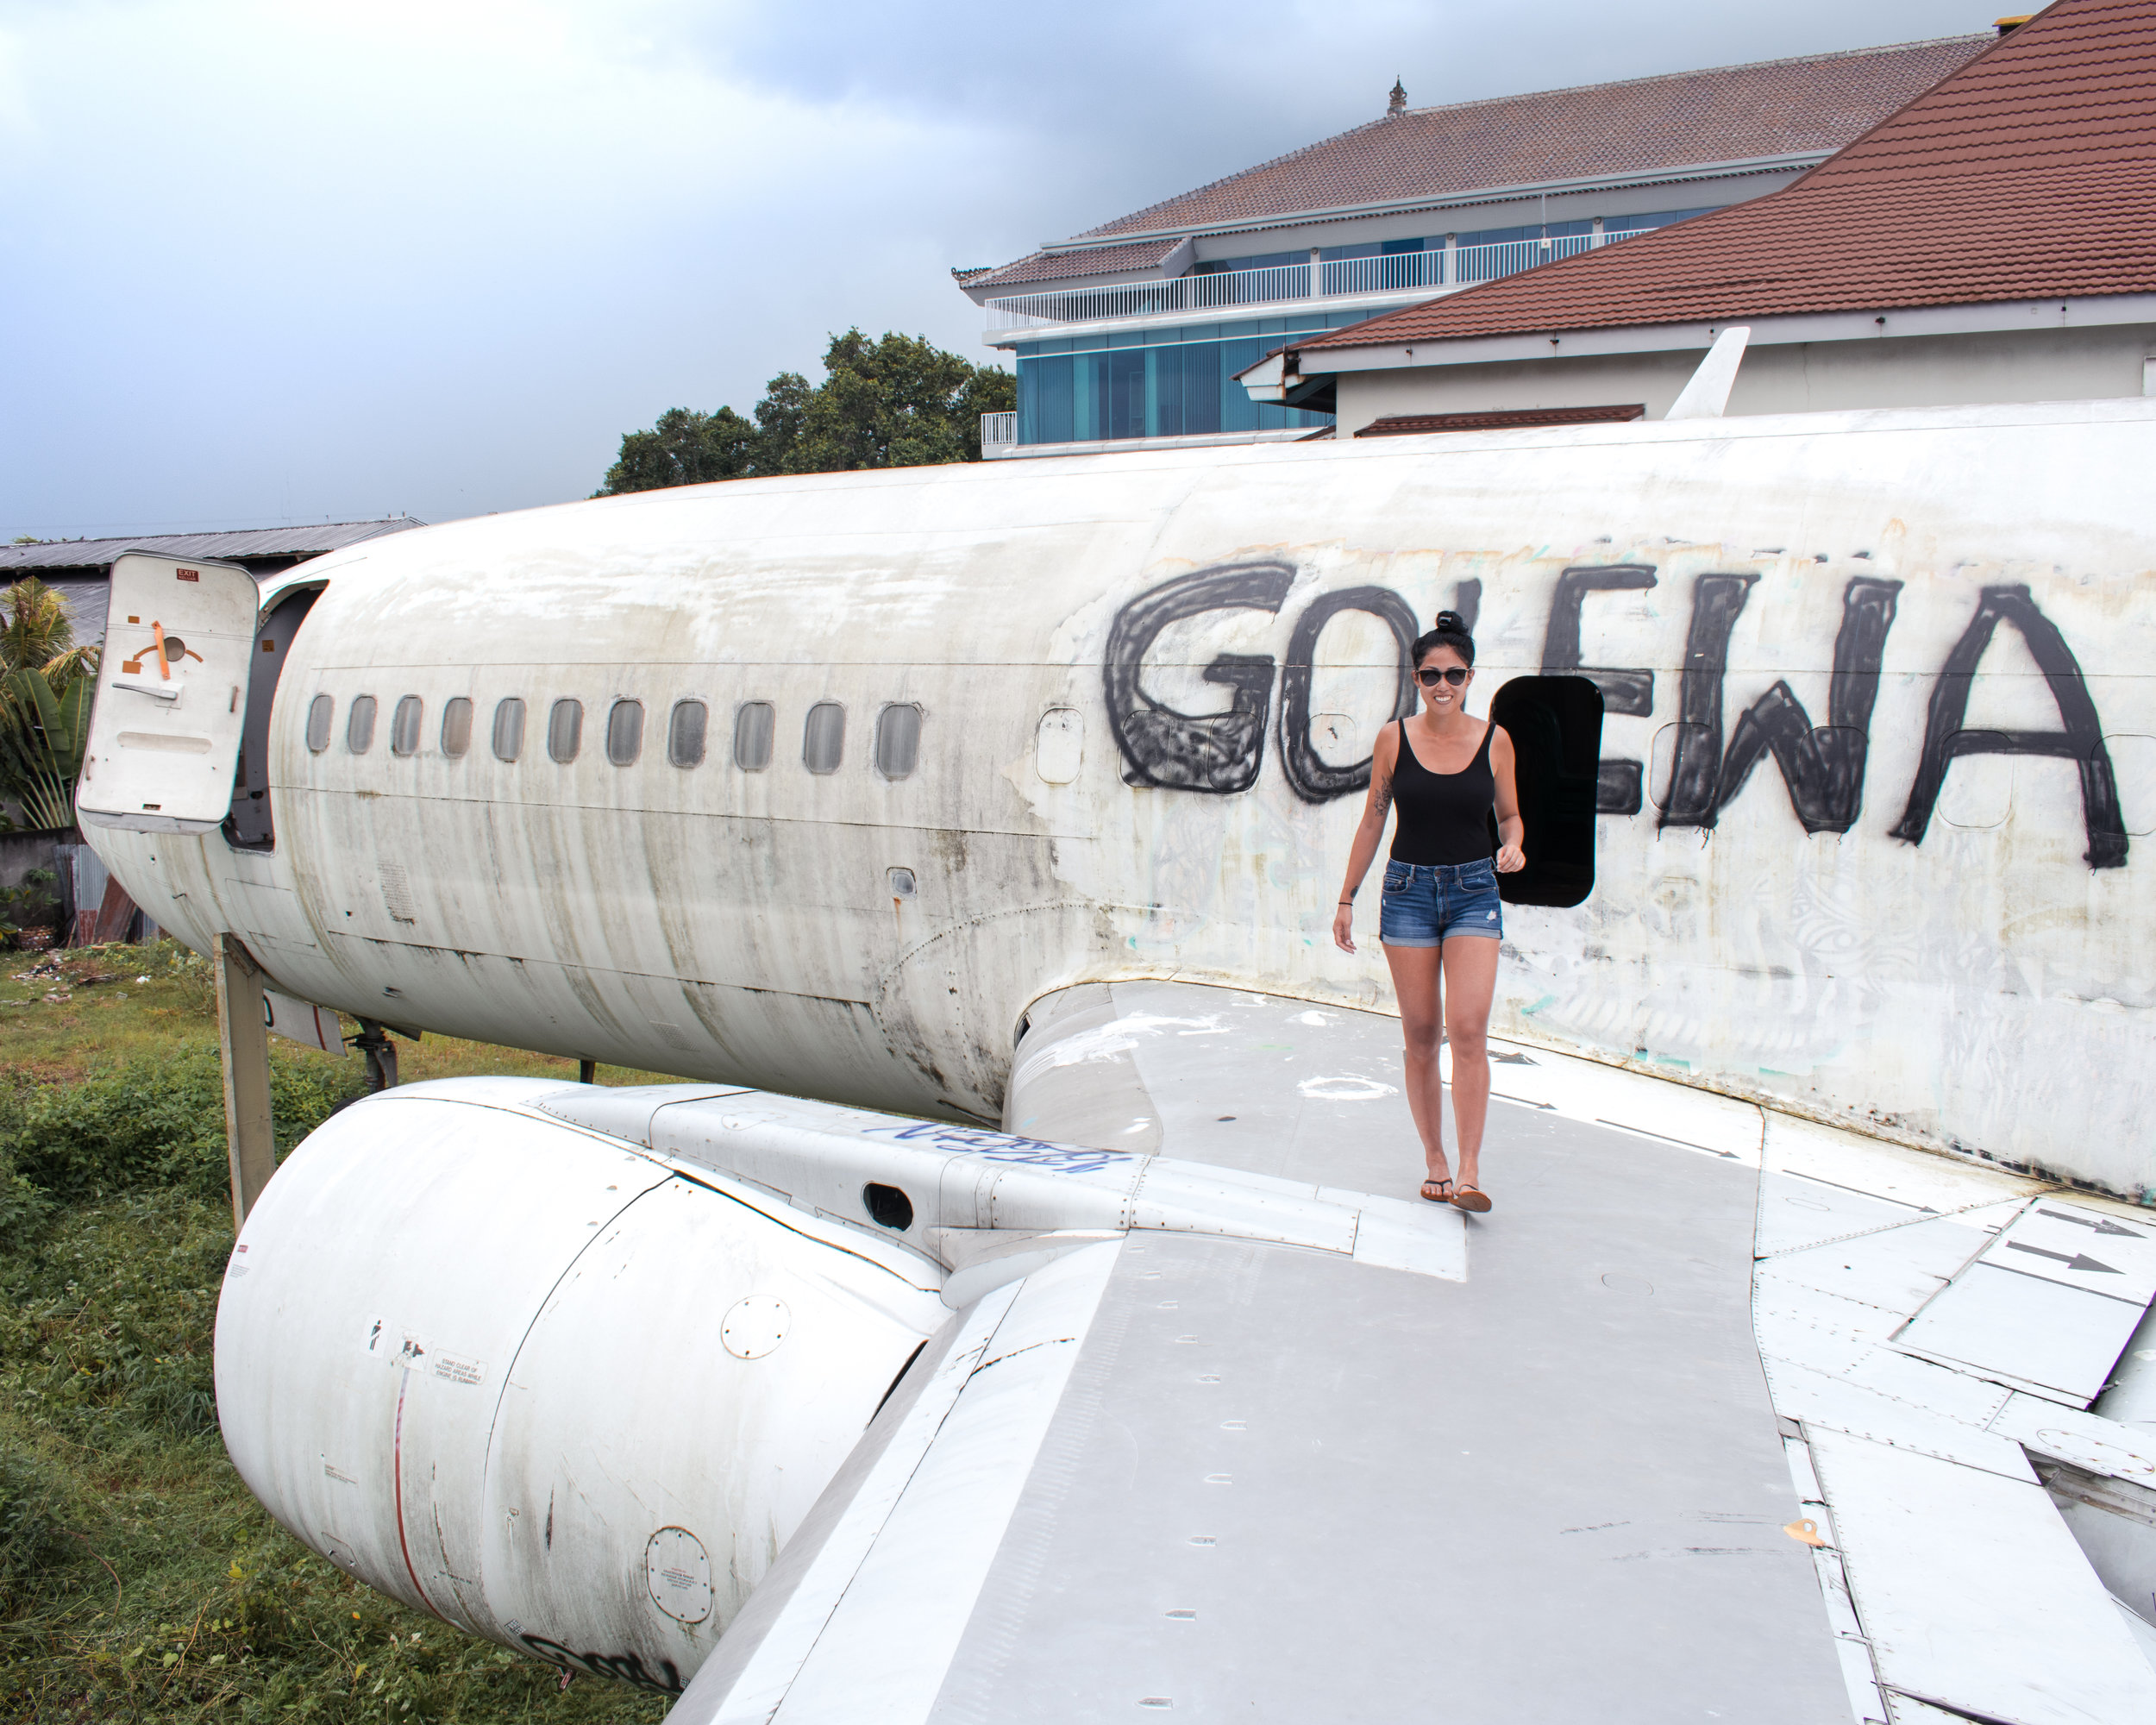 Abandoned airplane in Bali, Indonesia